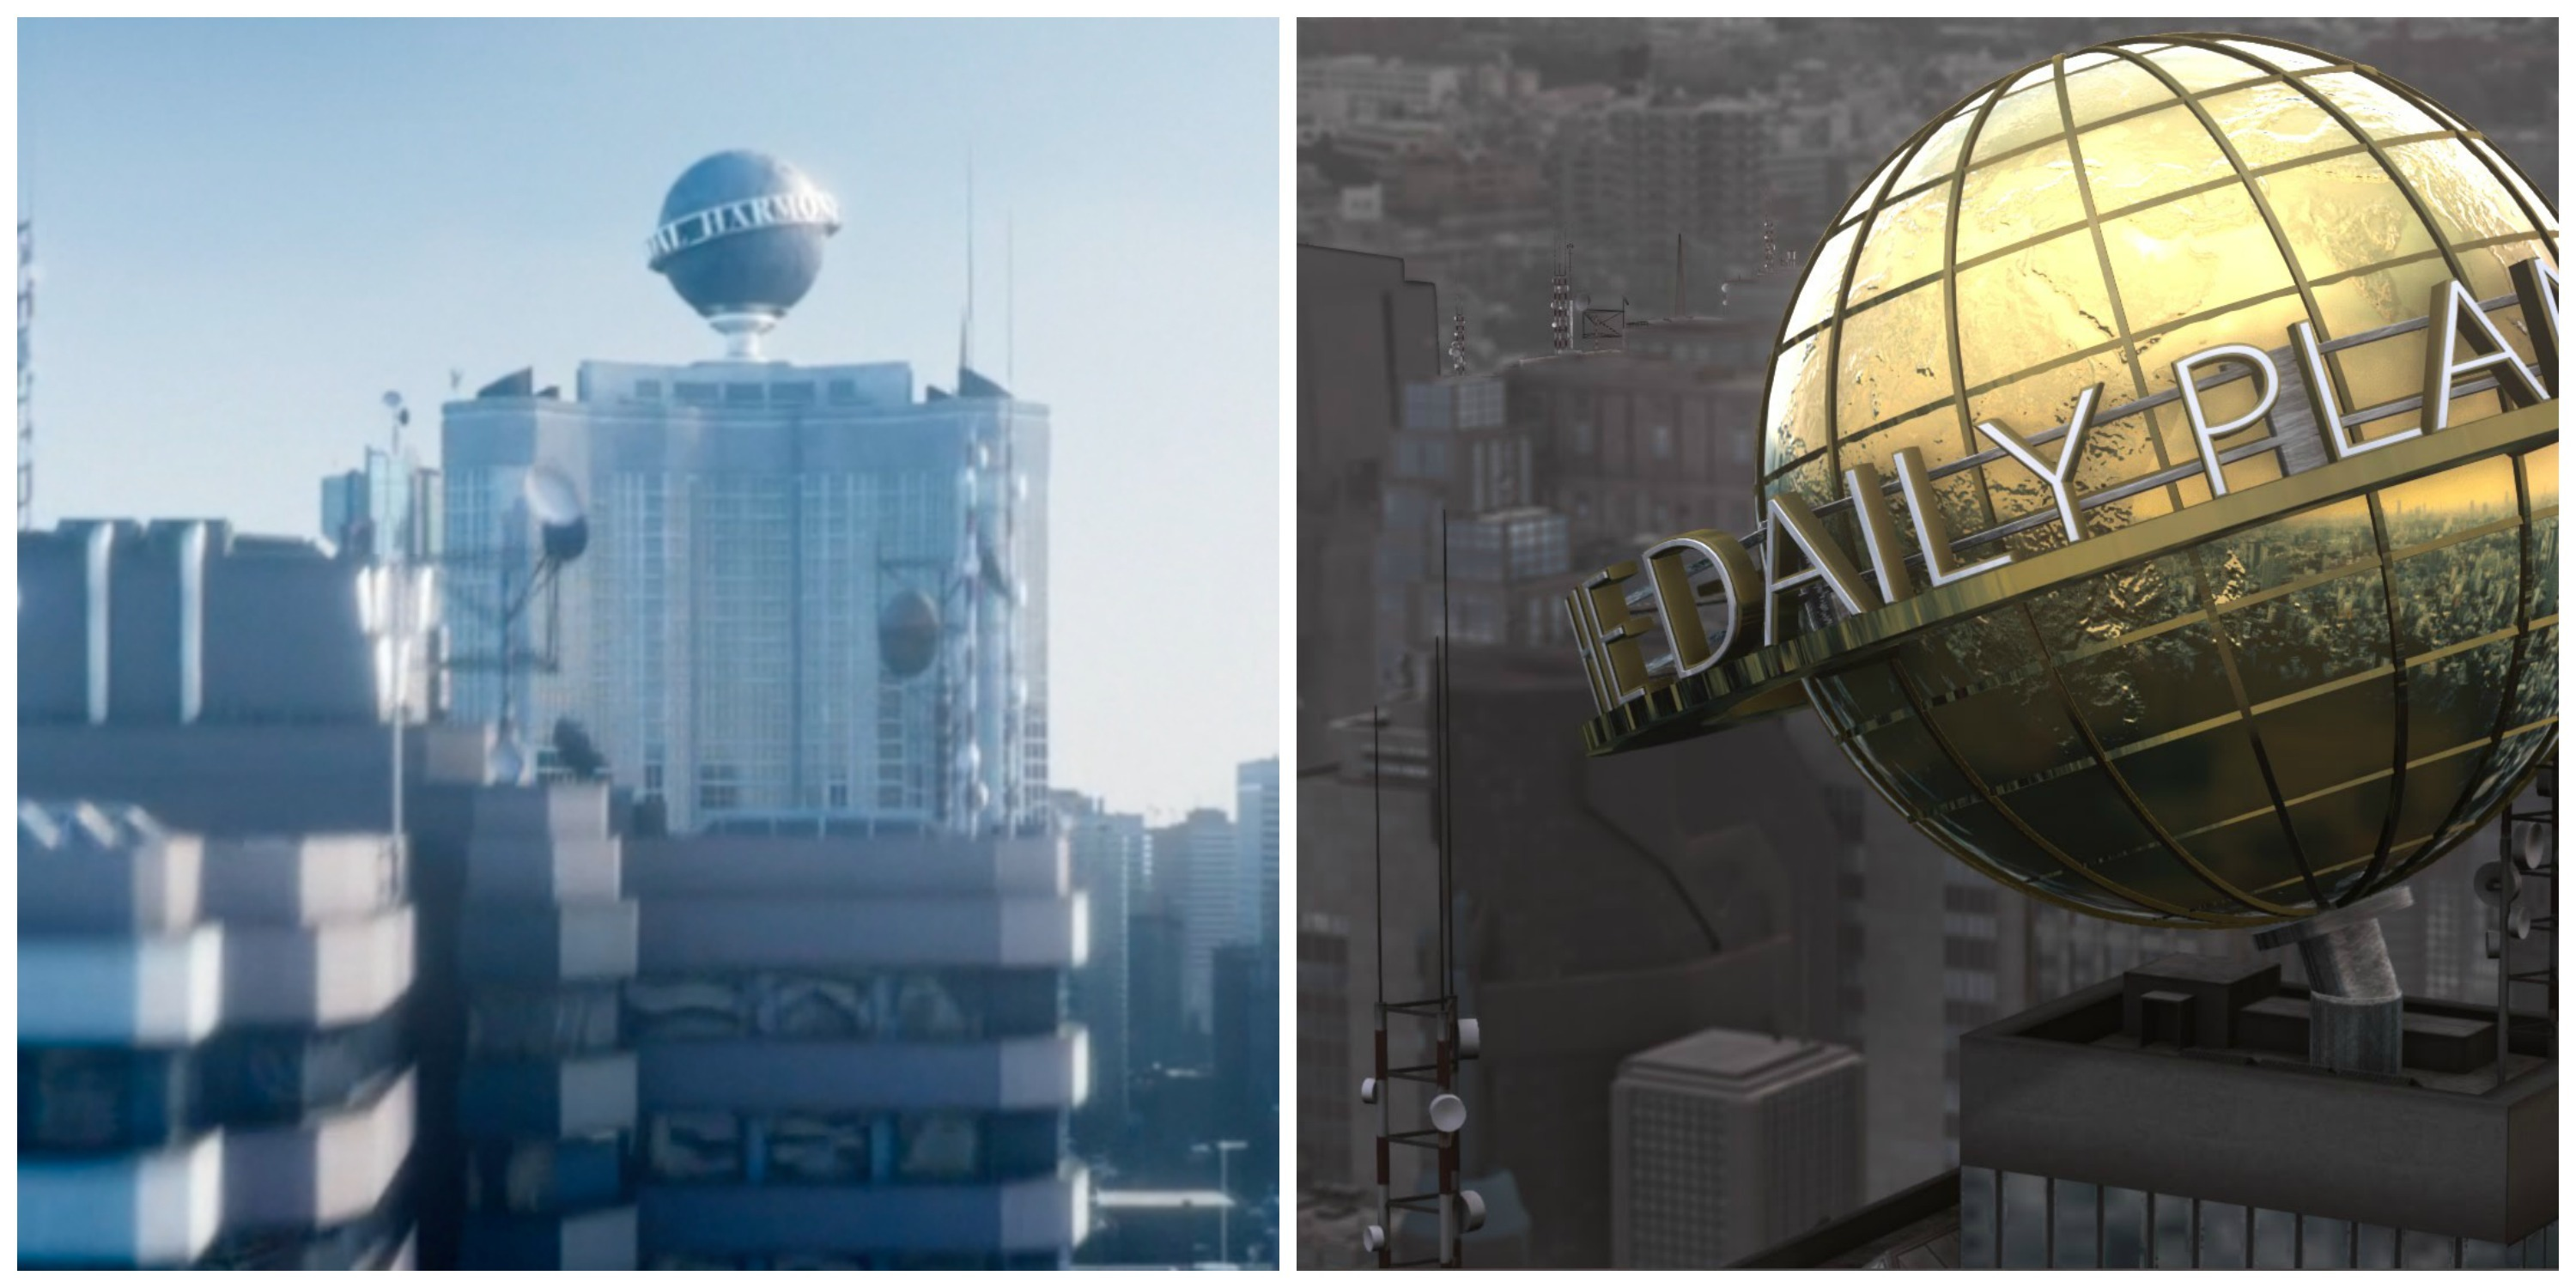 LEFT: Harmony Shoal. RIGHT: Daily Planet